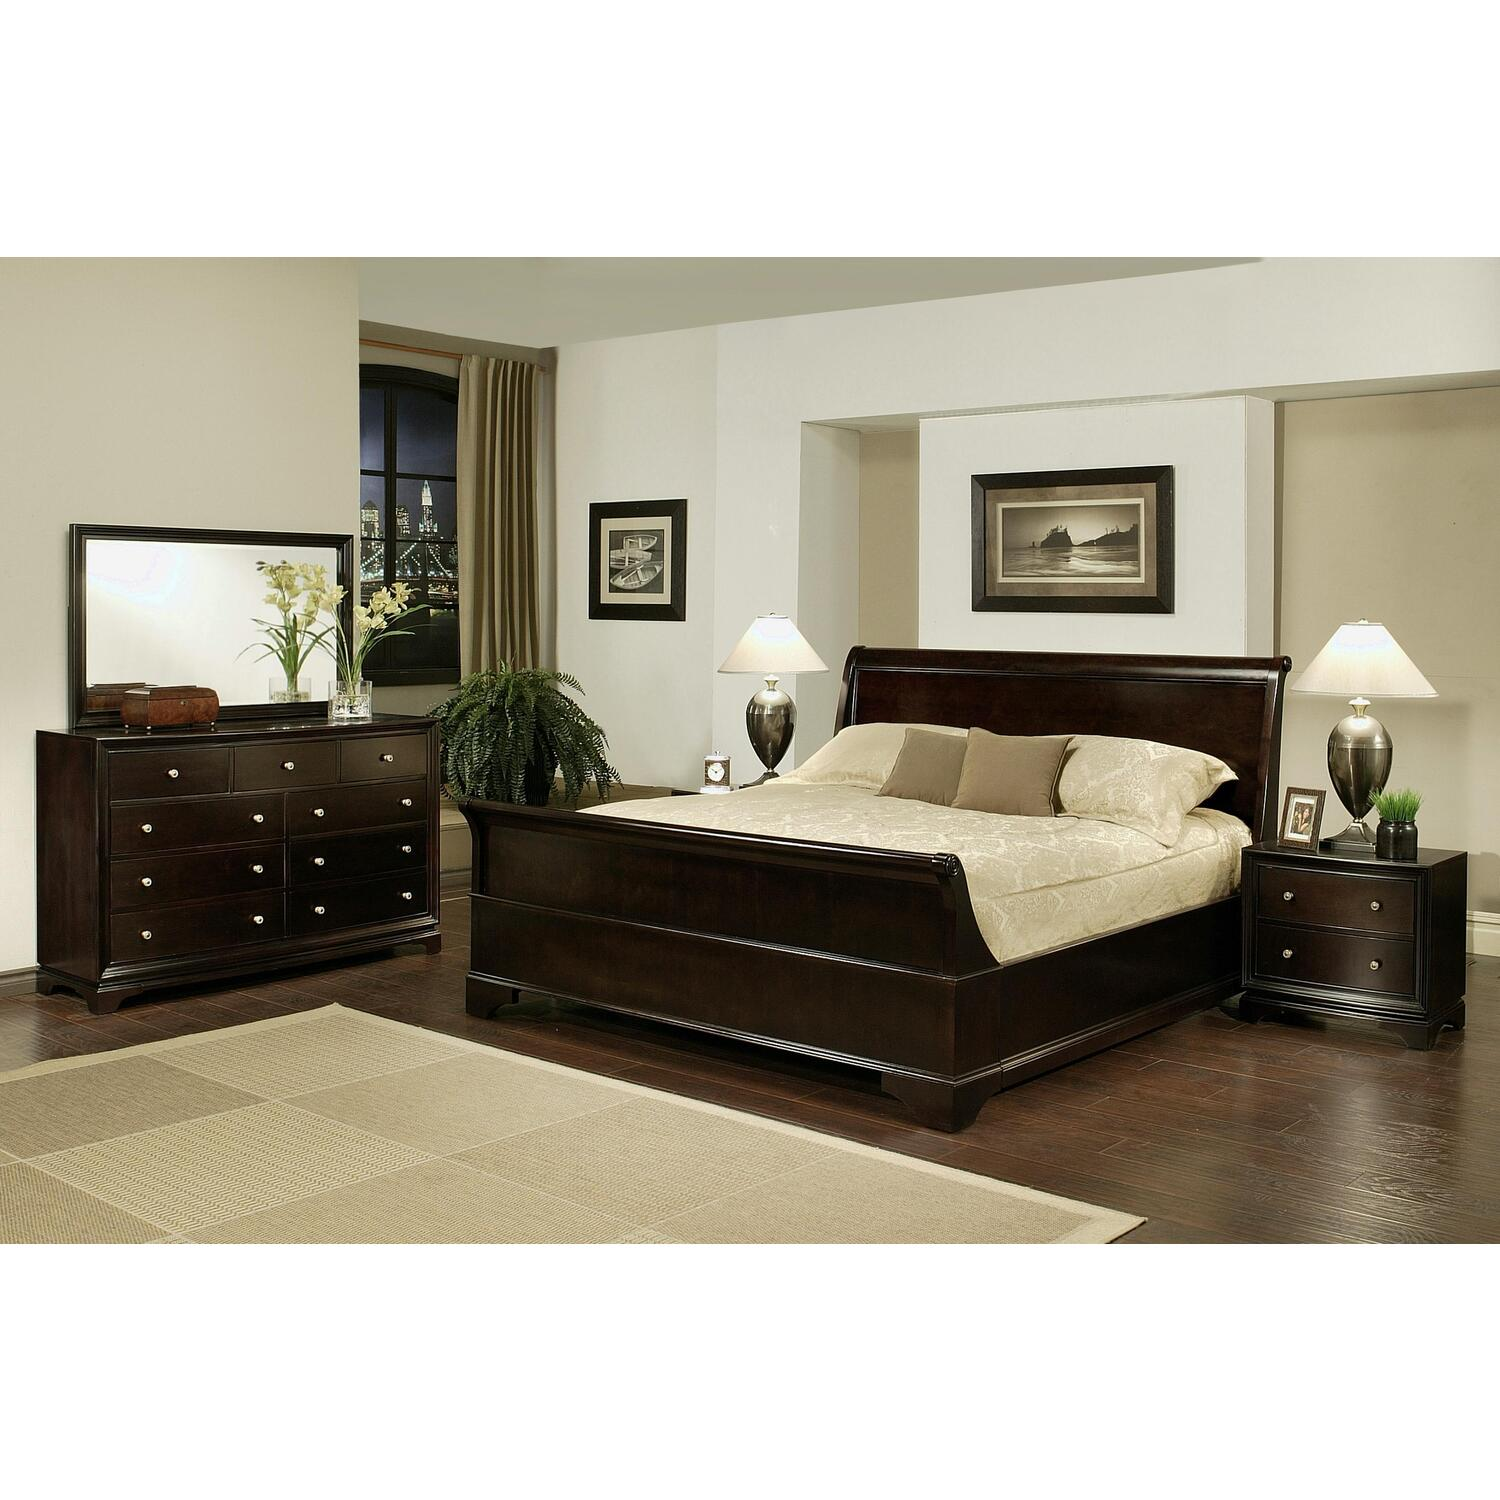 abbyson living 5 piece sleigh queen size bedroom set by oj commerce abbl141 3. Black Bedroom Furniture Sets. Home Design Ideas